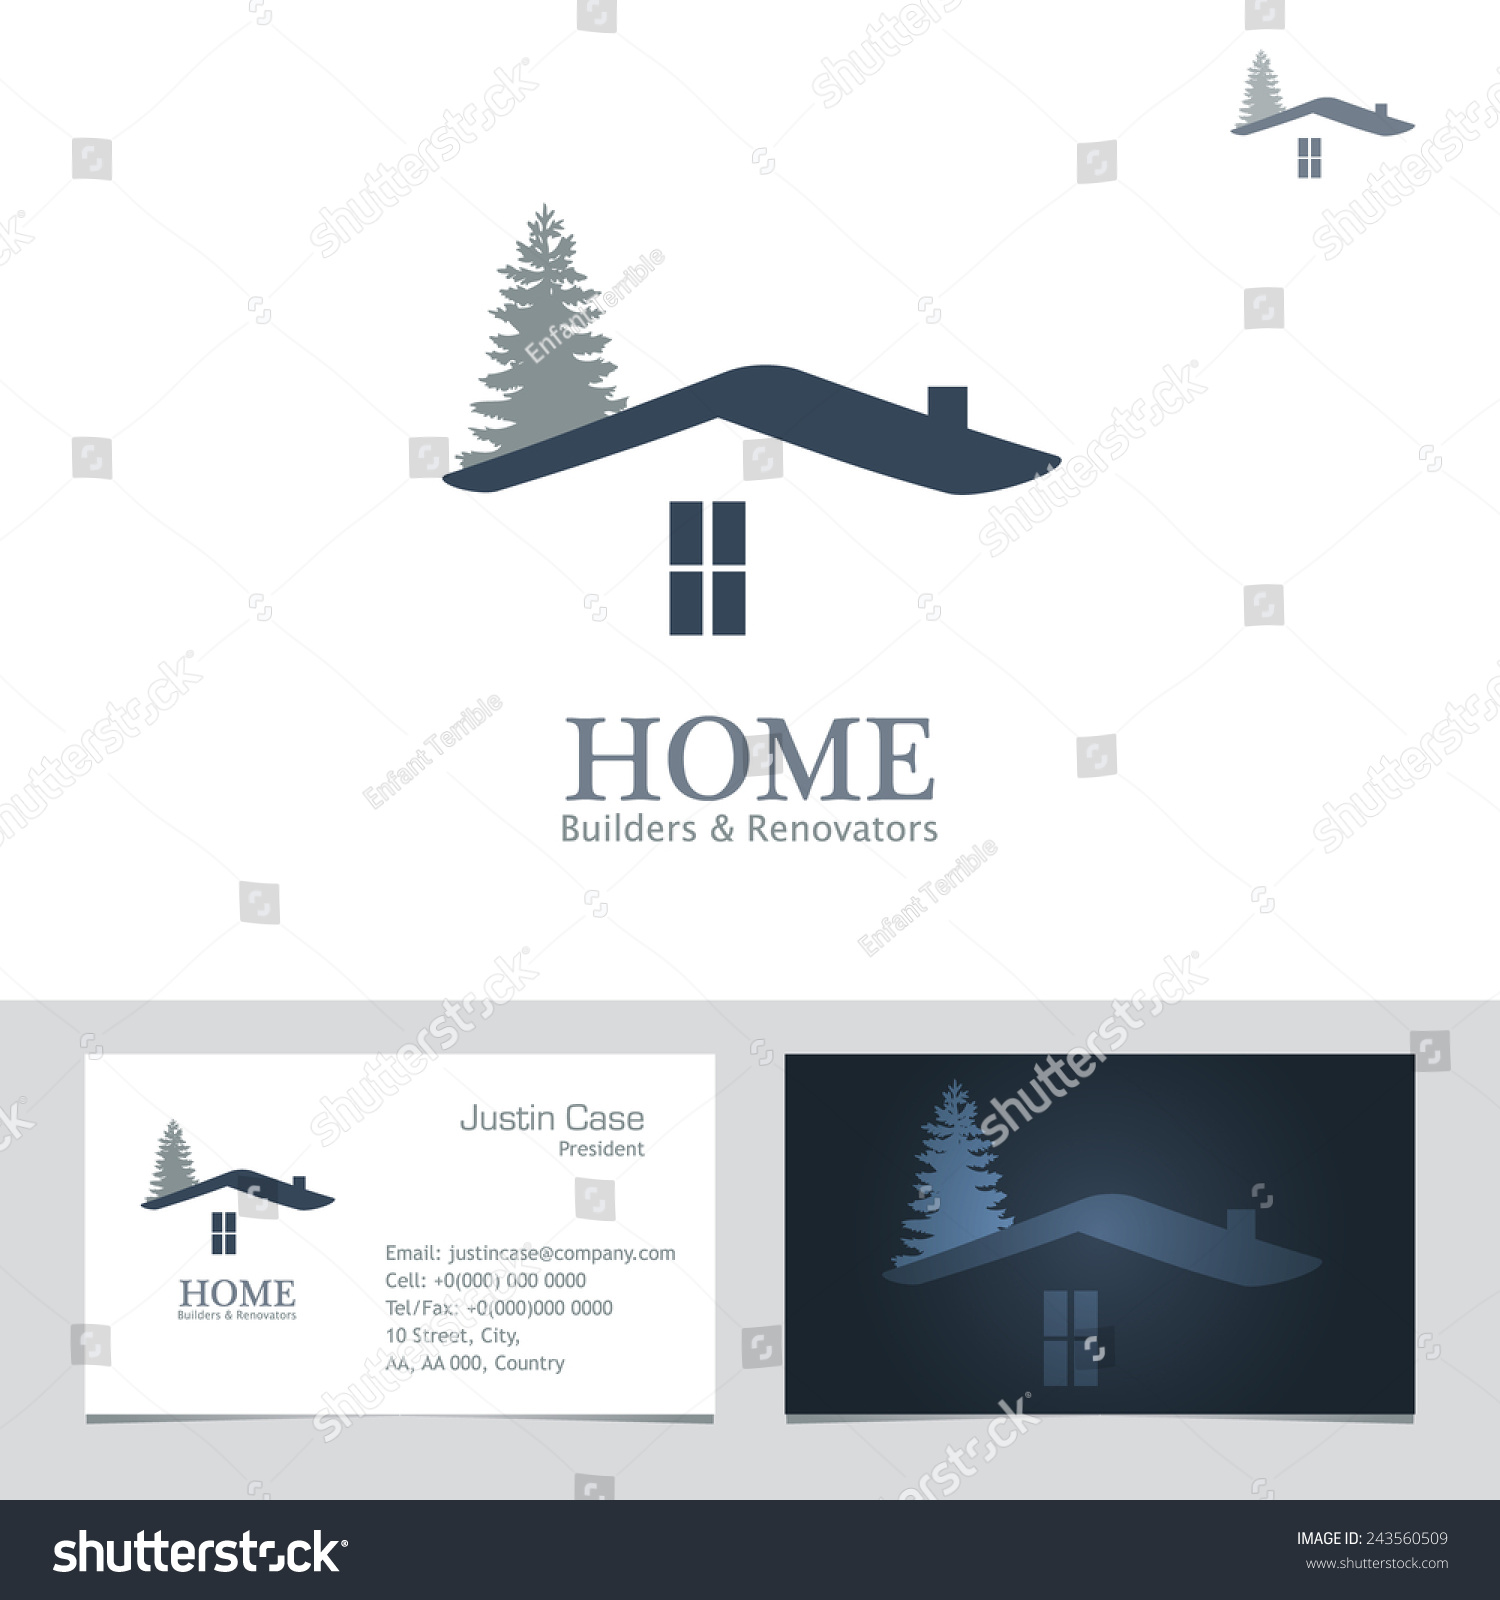 Real estate business sign business card stock vector 243560509 real estate business sign business card vector template for architecture bureau home insurance magicingreecefo Image collections